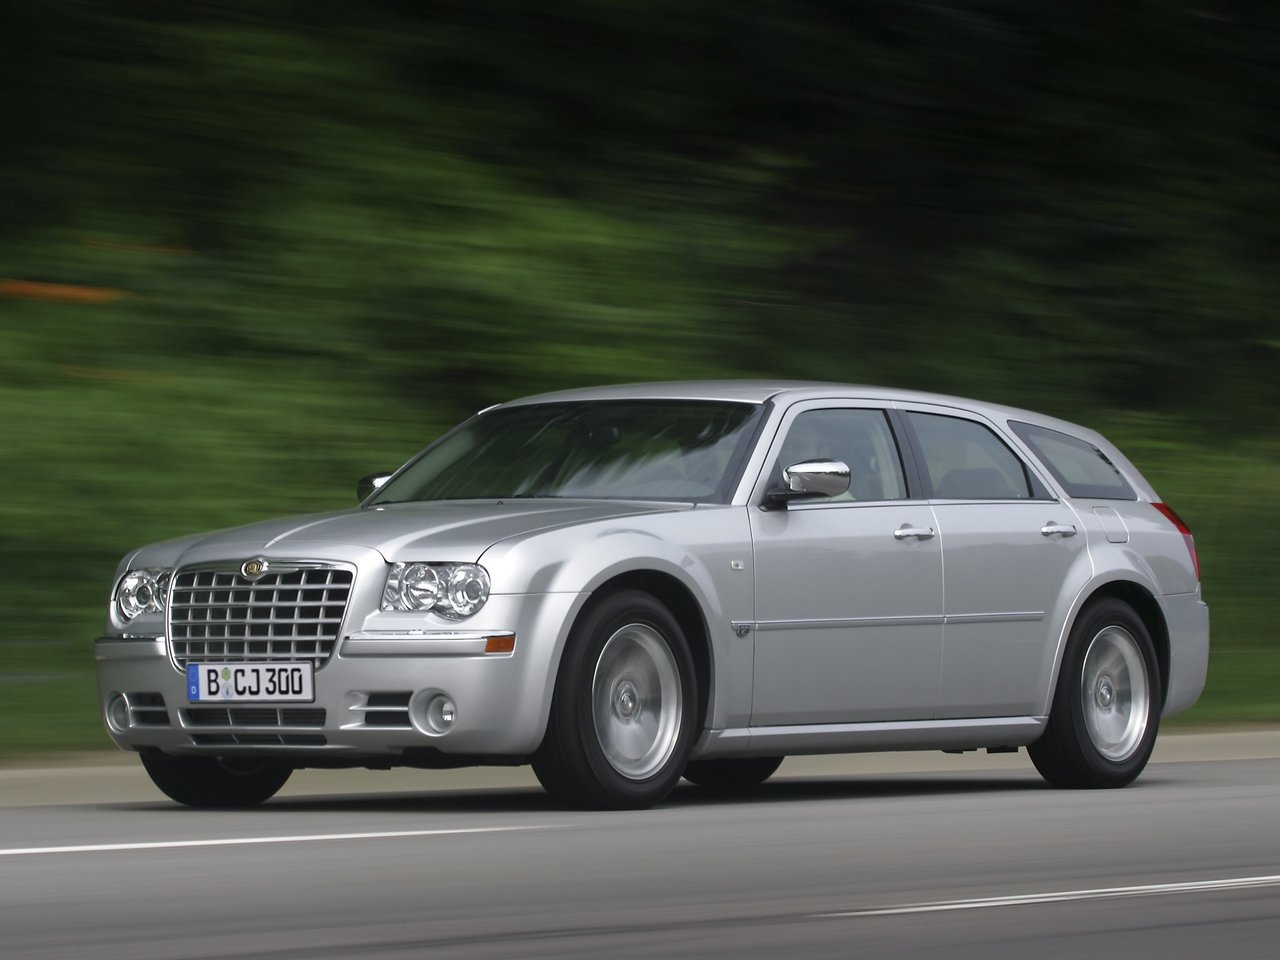 Автомобиль Chrysler 300C